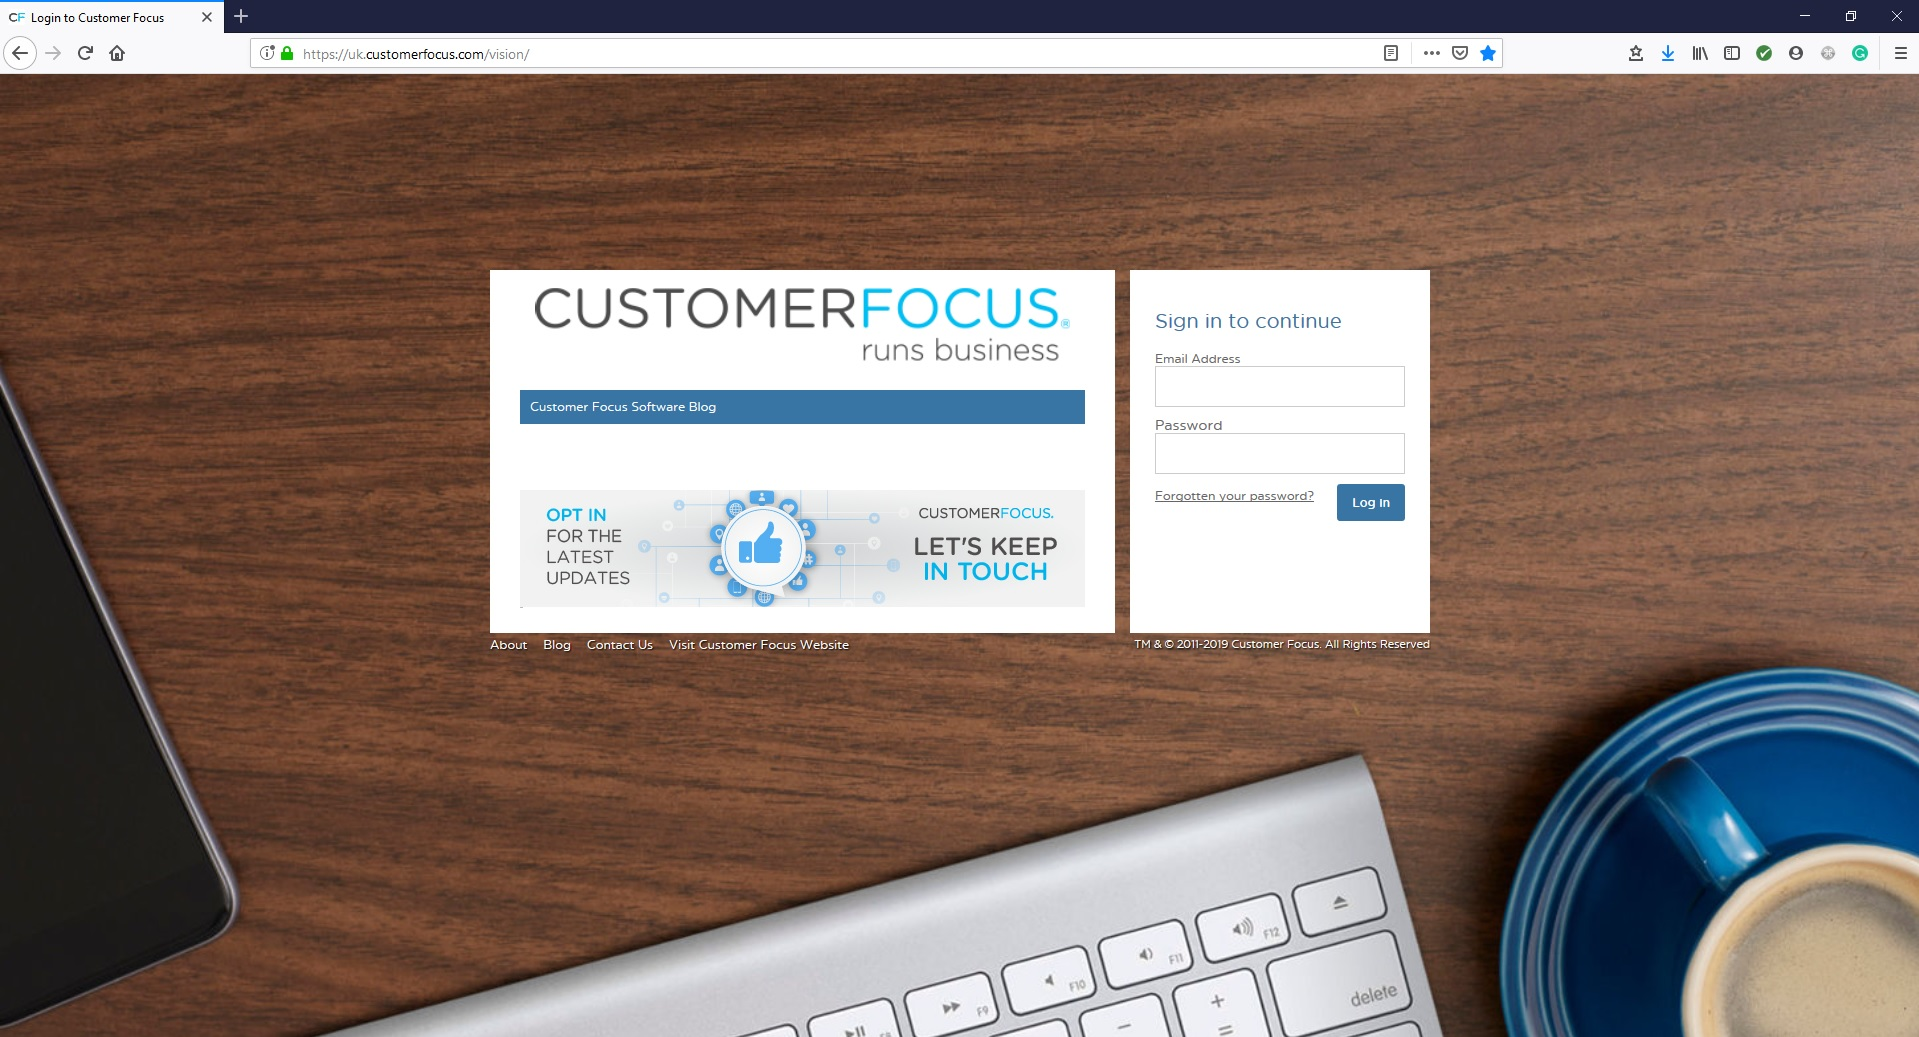 New Customer Focus log in page